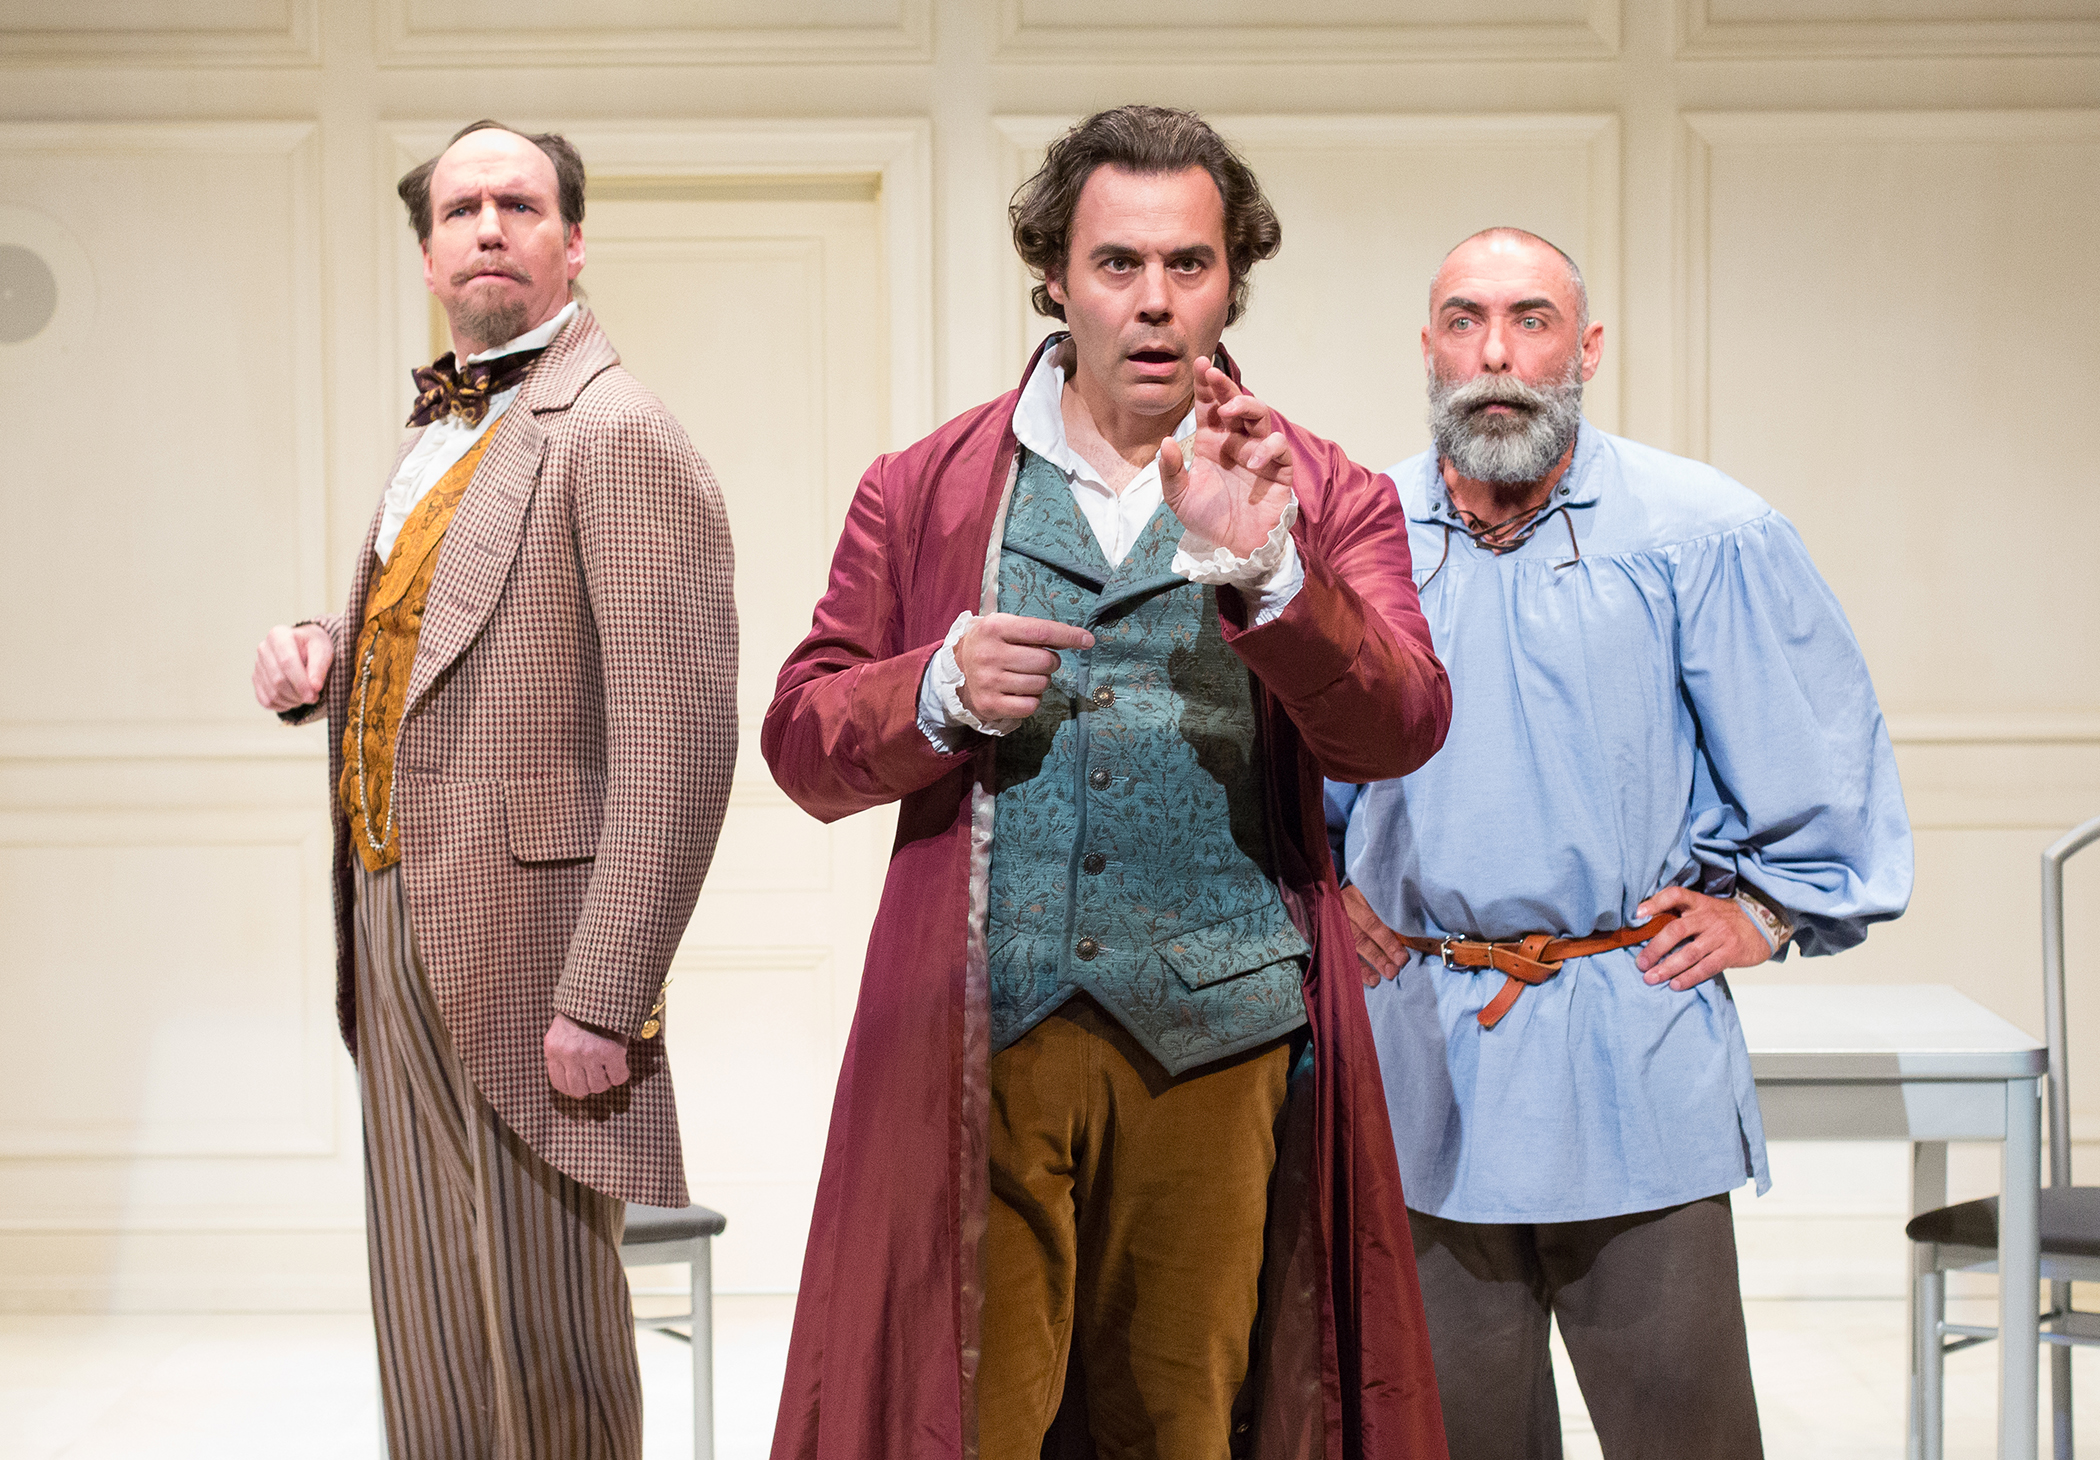 Brian McCann as Dickens, Gregory Isaac as Jefferson, and Andrew Criss as Tolstoy Photo by Mark Garvin